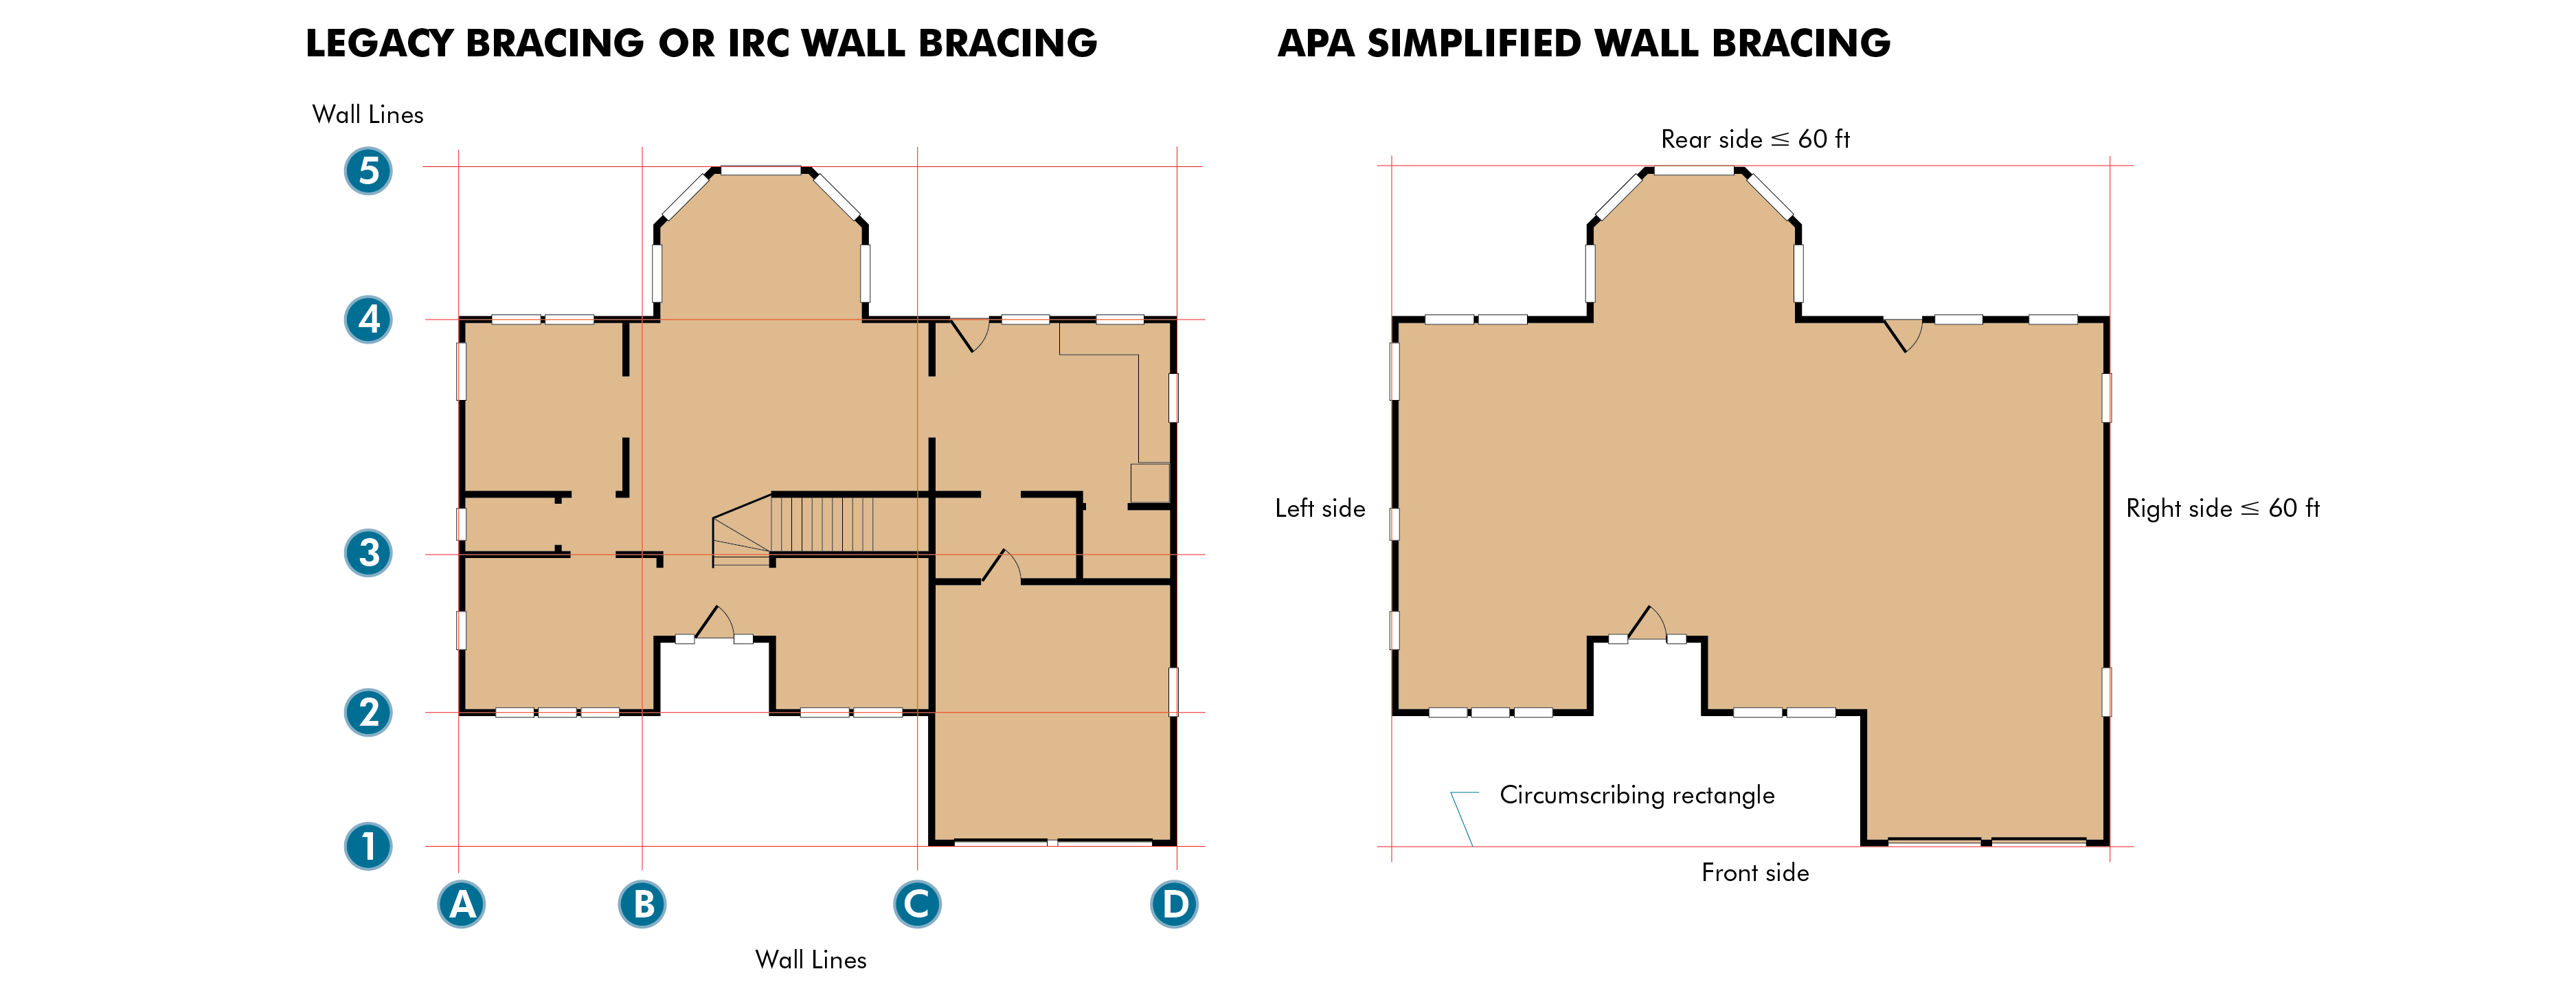 Traditional wall bracing compared with the APA Simplified Wall Bracing Method